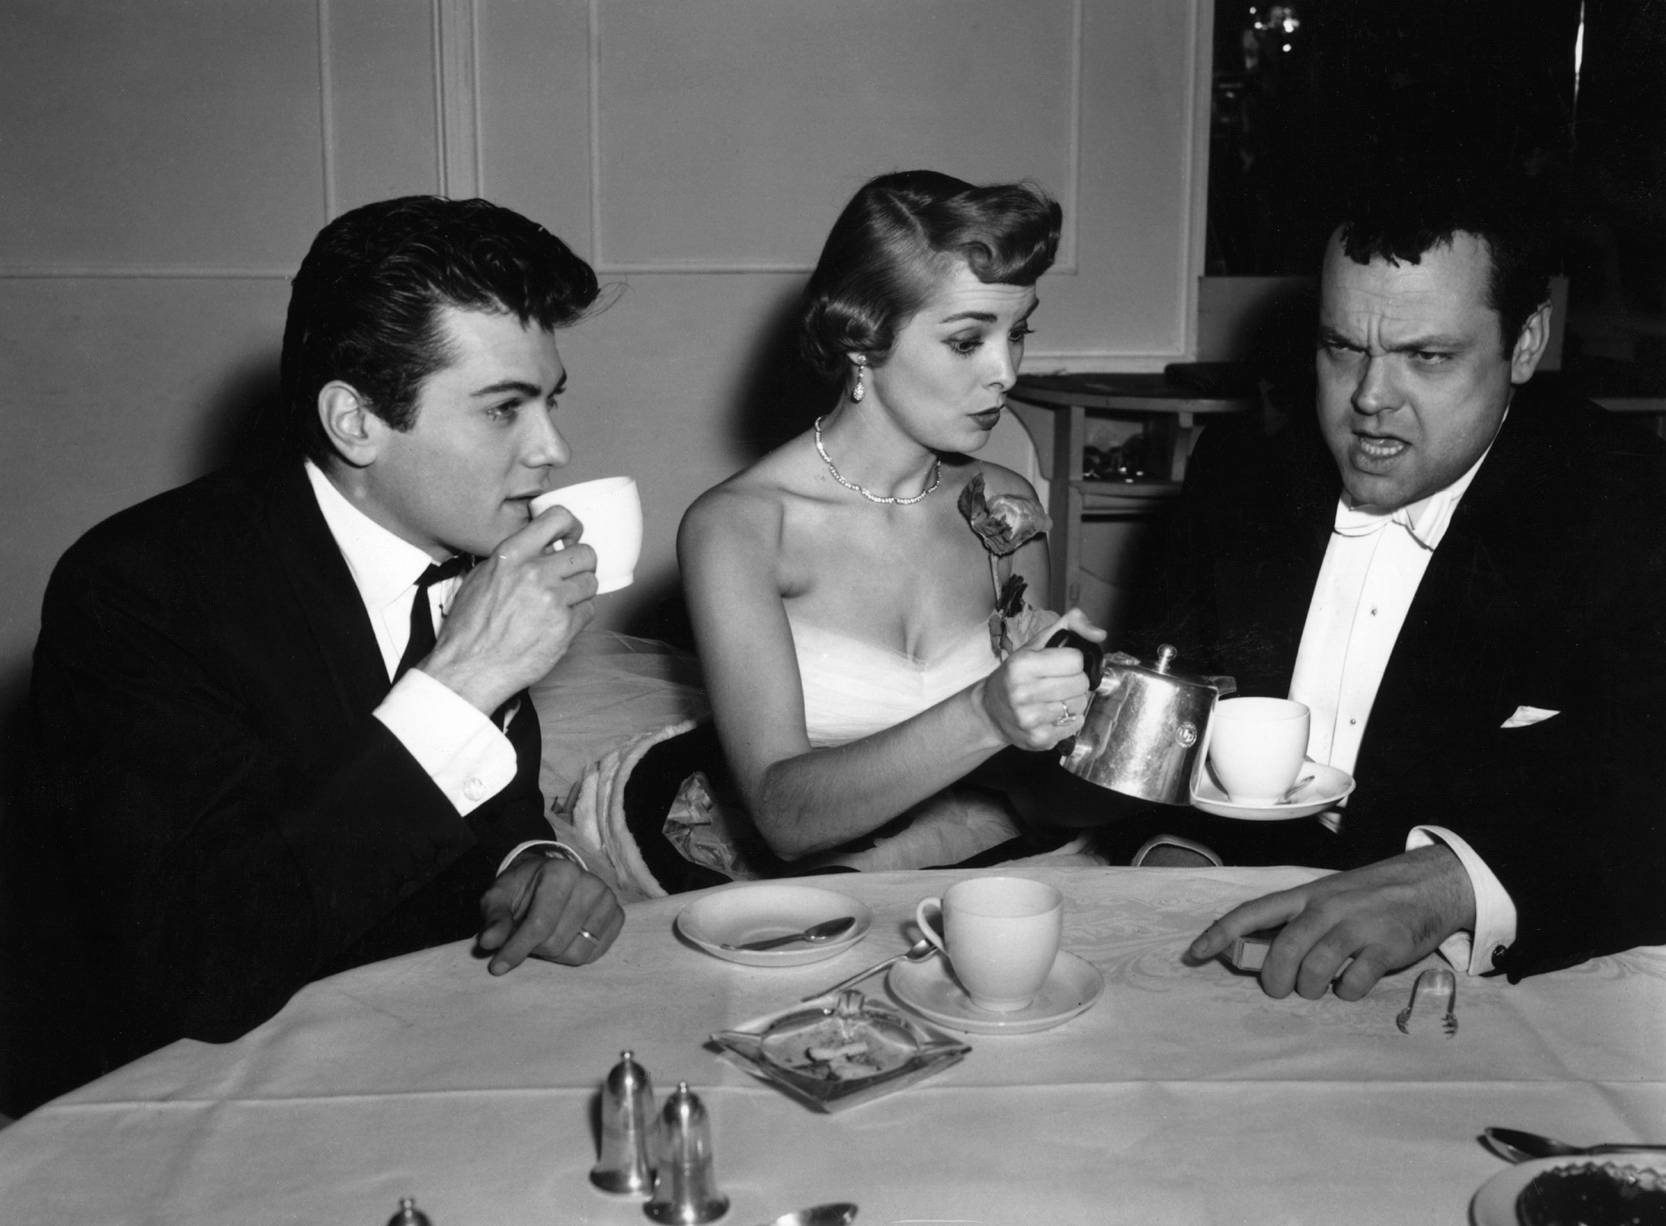 Tony Curtis, Janet Leigh, Orson Welles